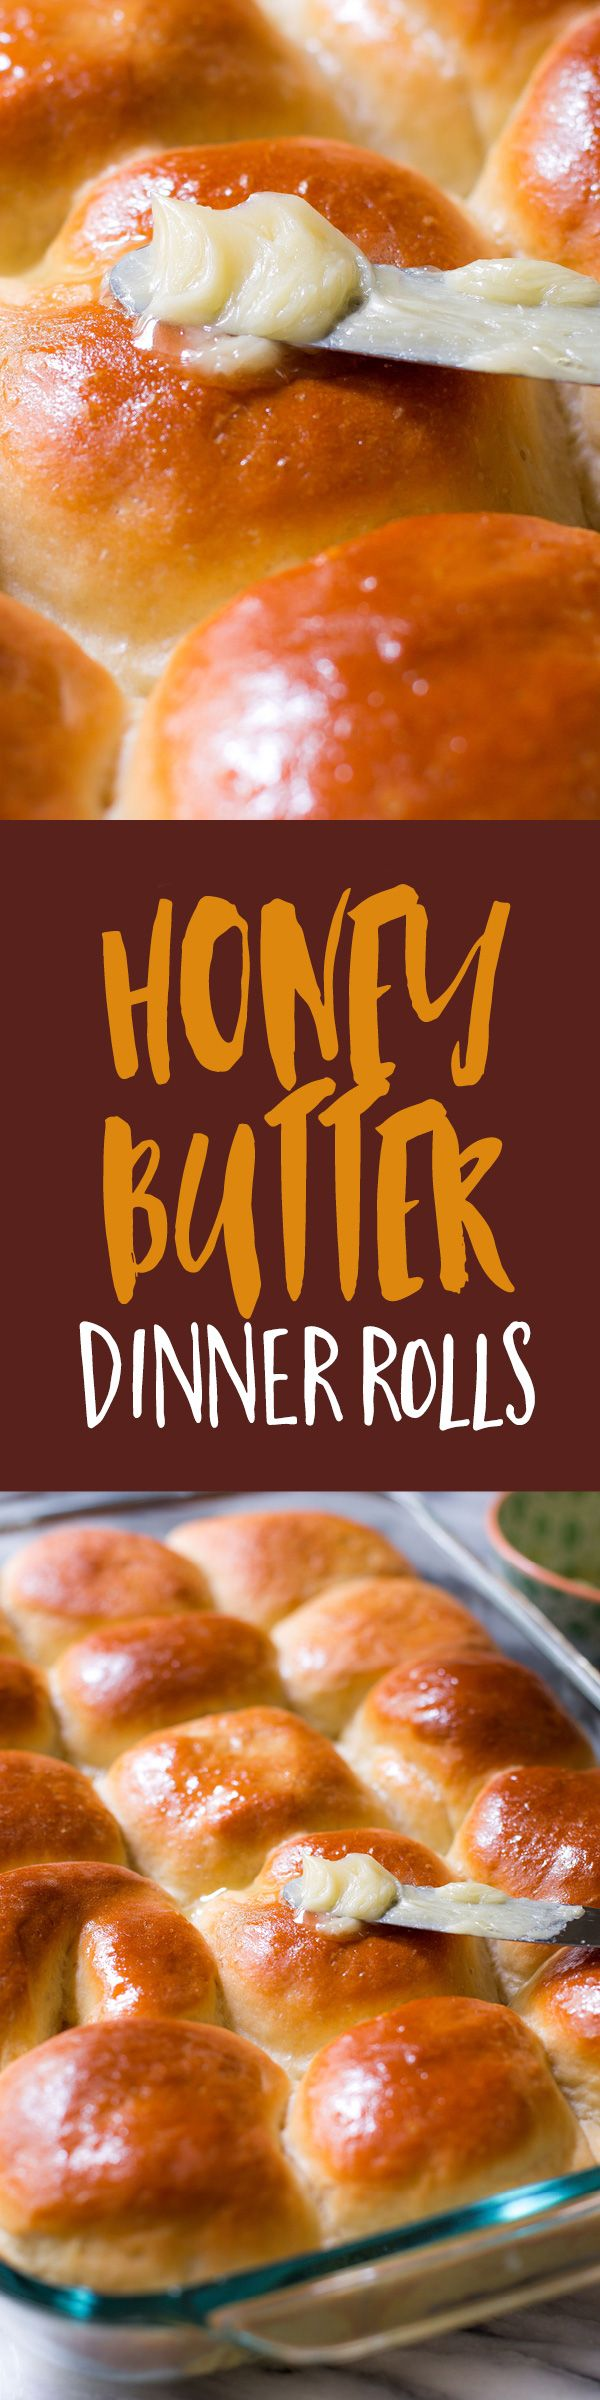 Soft and fluffy dinner rolls recipe infused with sweet honey and topped with homemade honey butter right after baking. They're absolutely a must for your dinner menu!